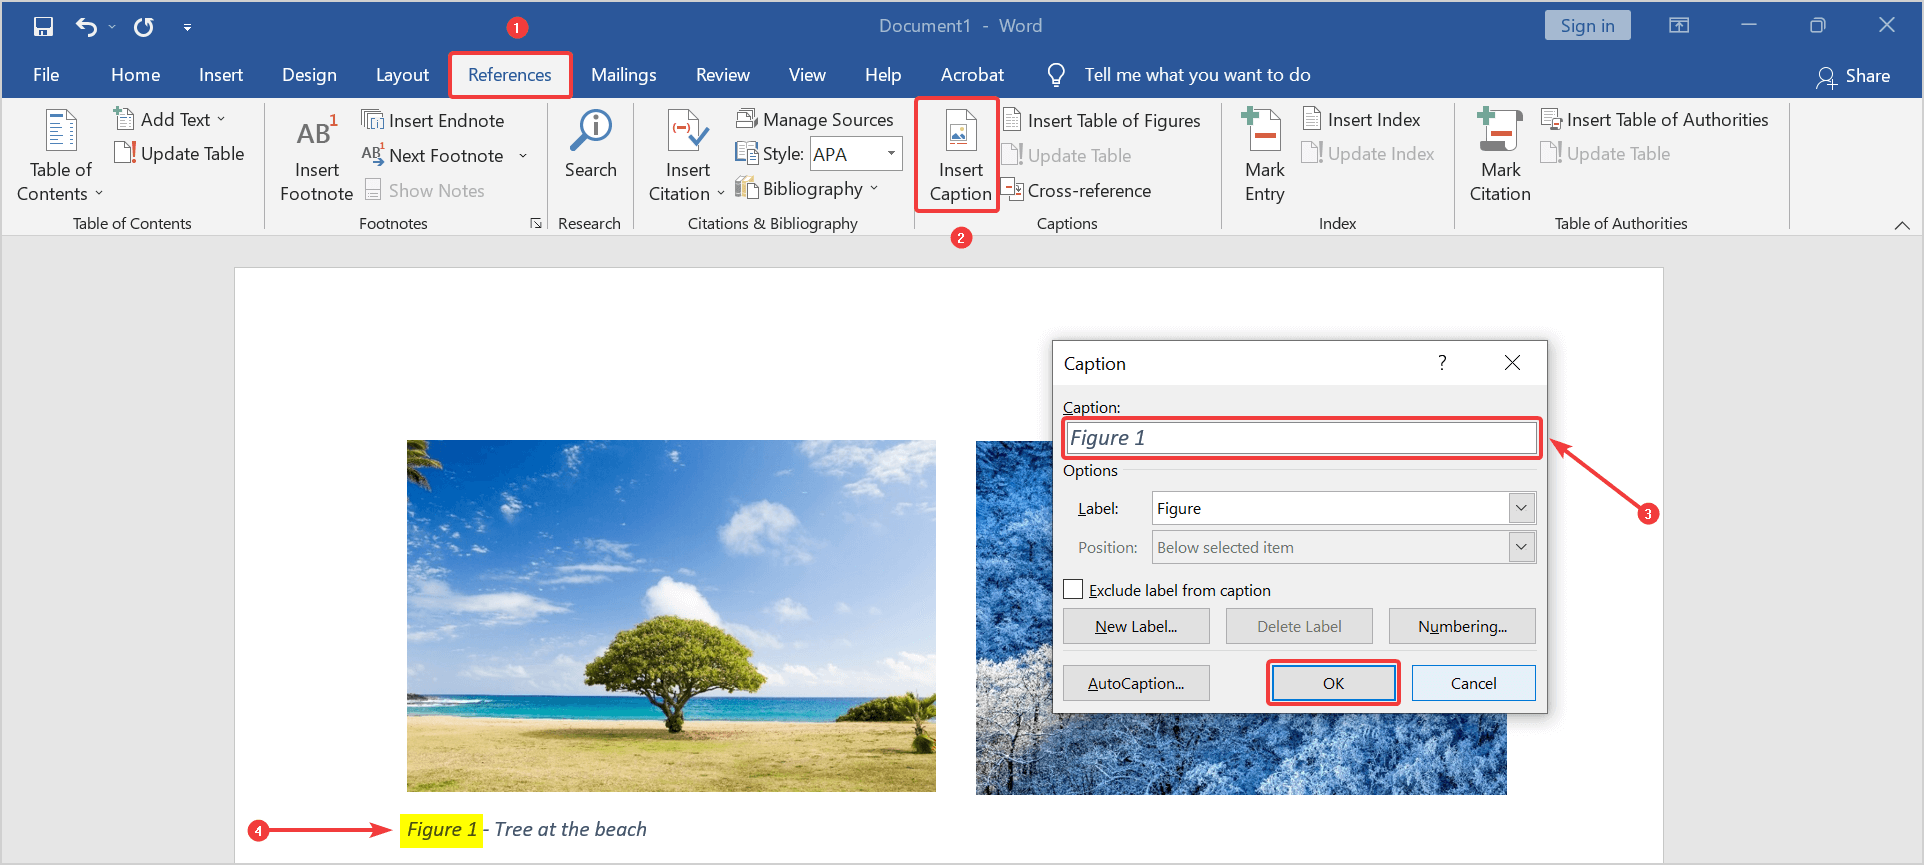 figure caption numbering incorrect in Word and switches numbers